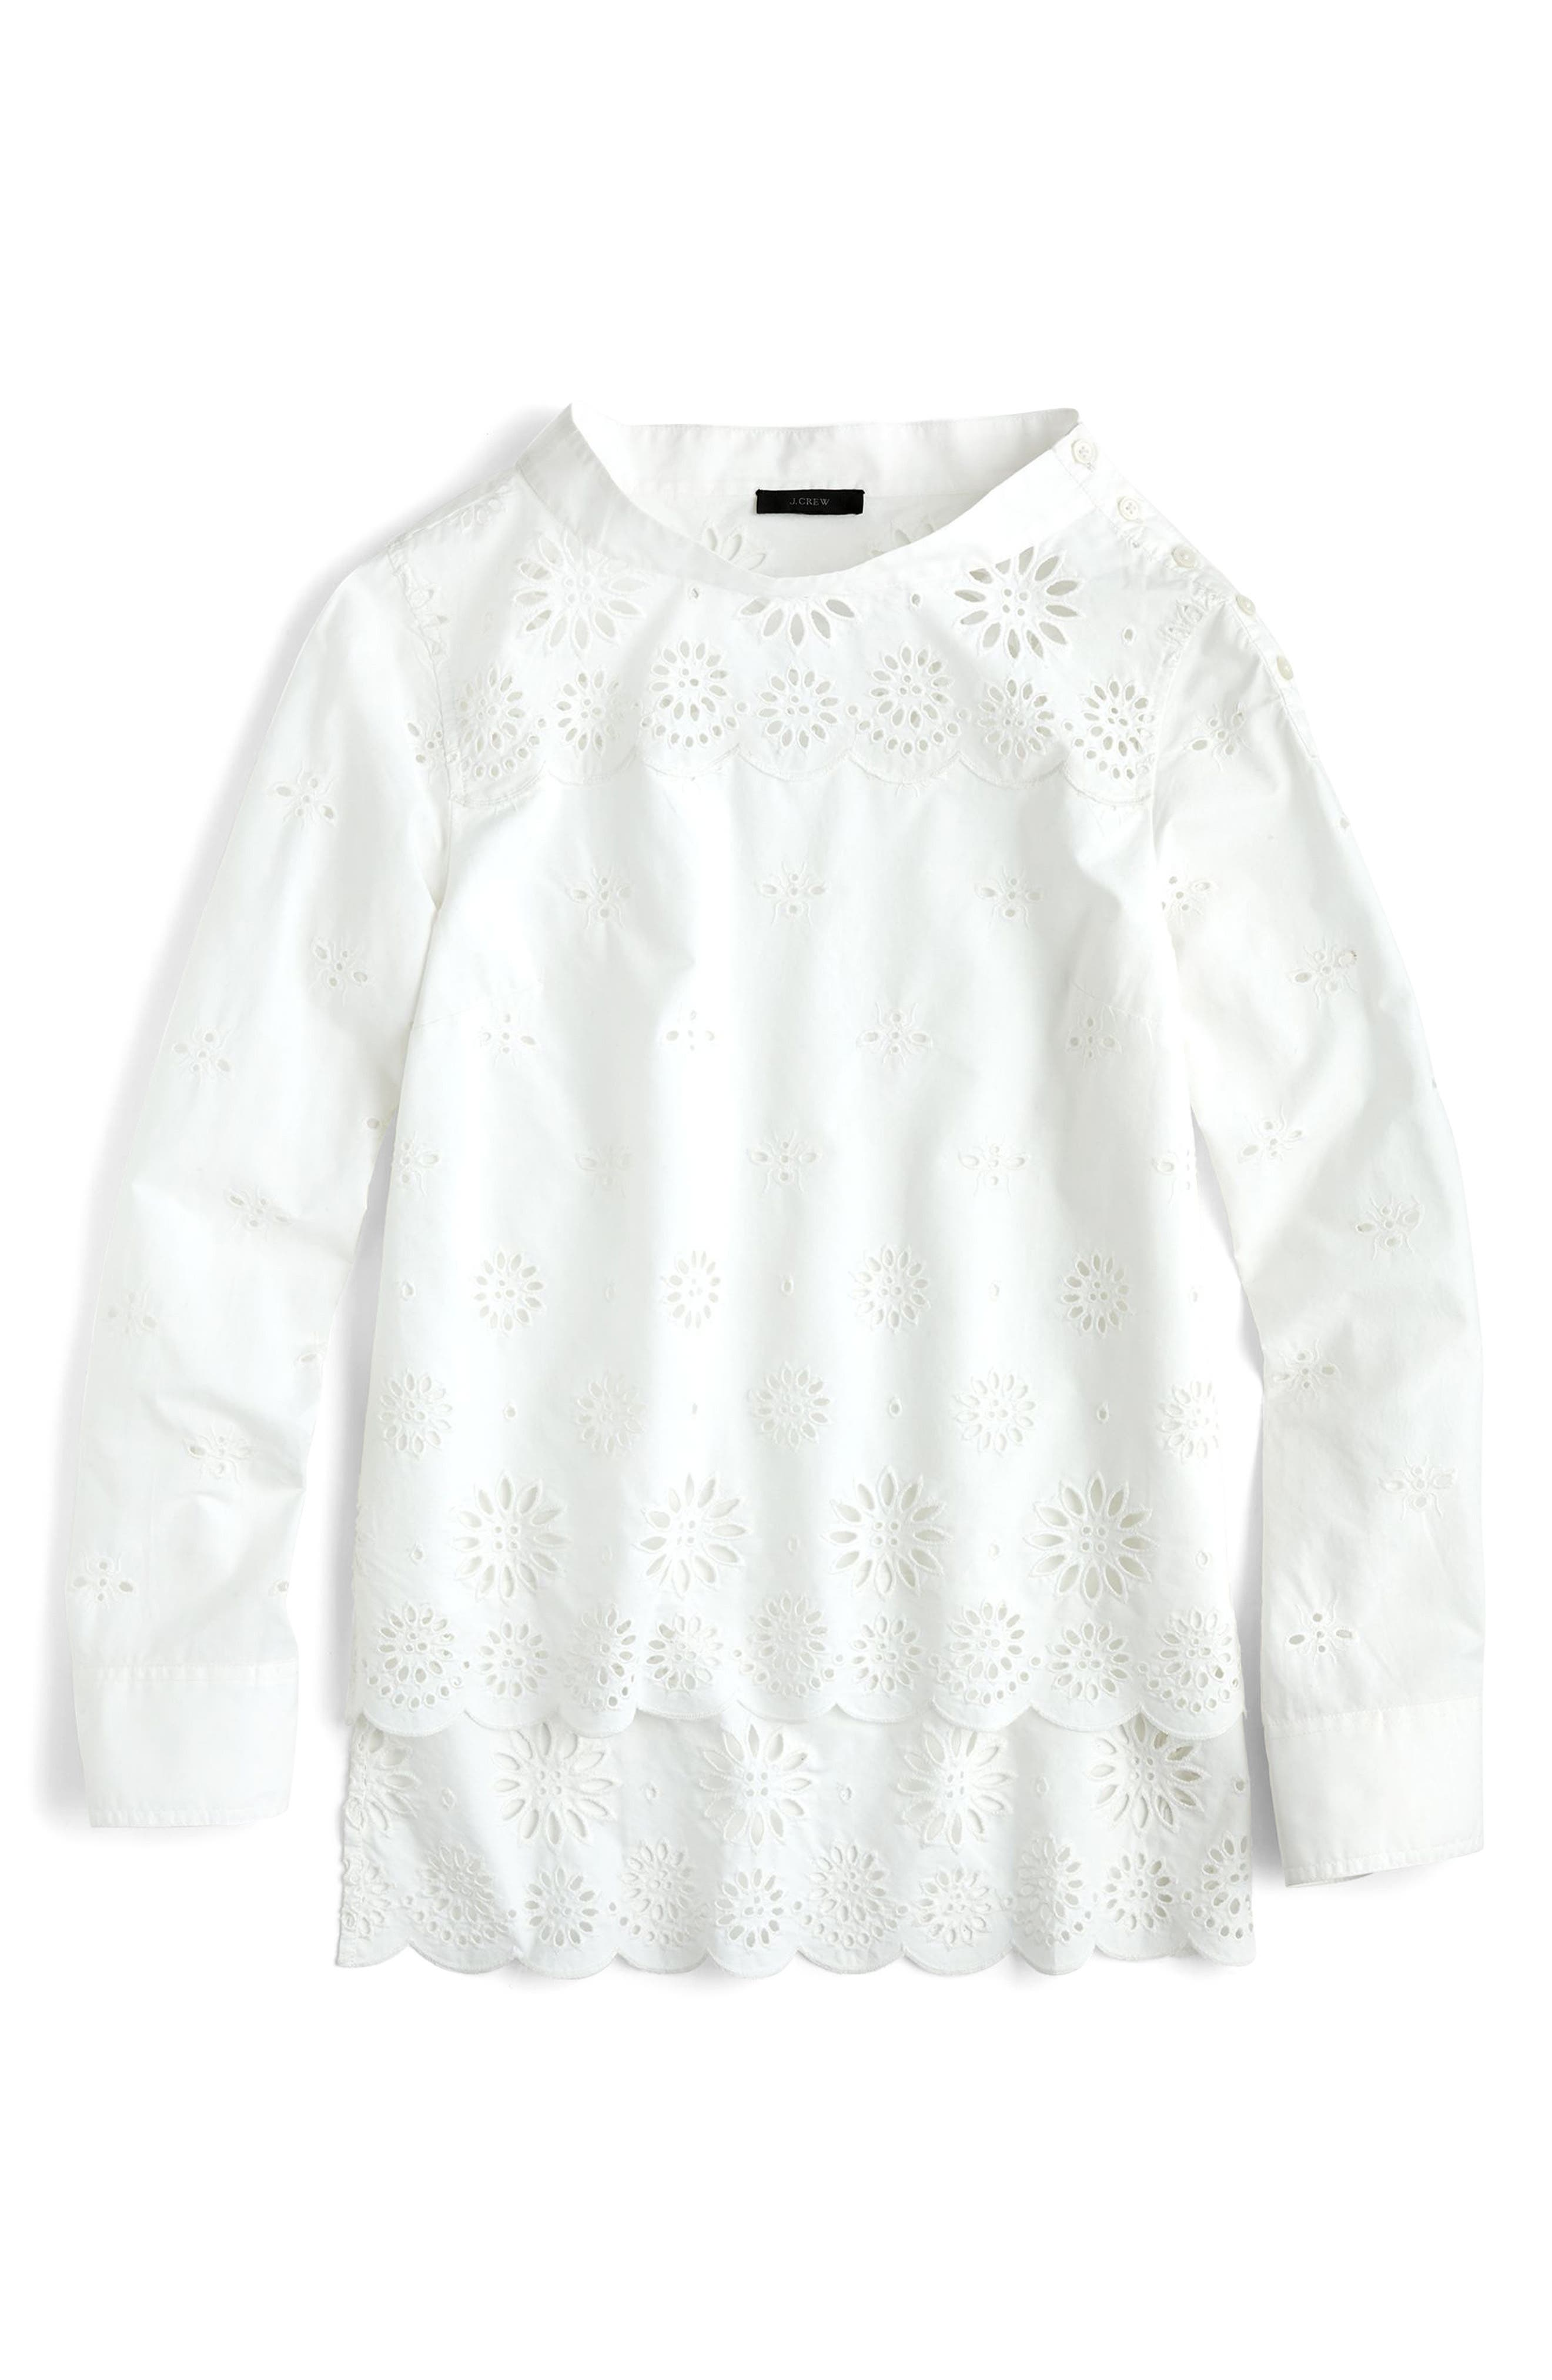 J.Crew Rooster Eyelet Cotton Top,                             Main thumbnail 1, color,                             White